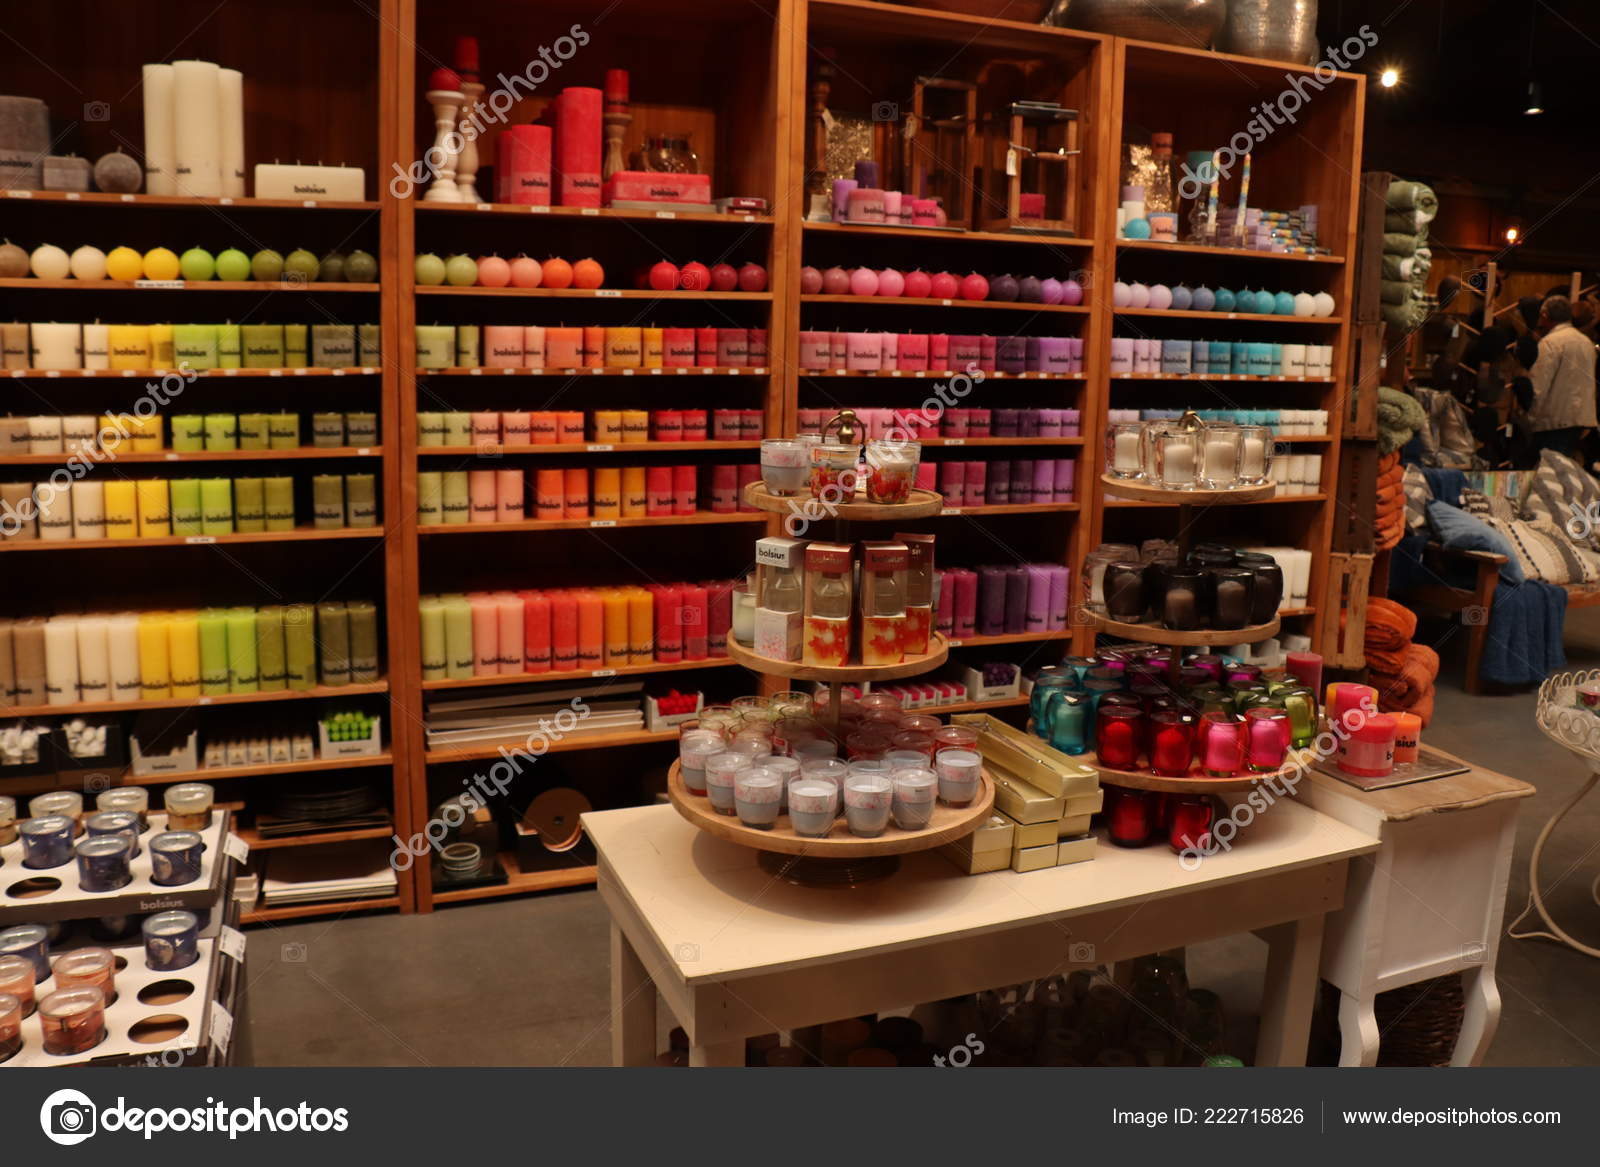 Cruquius Netherlands October 26Th 2018 Candles Display Home Decoration Store Stock Editorial Photography